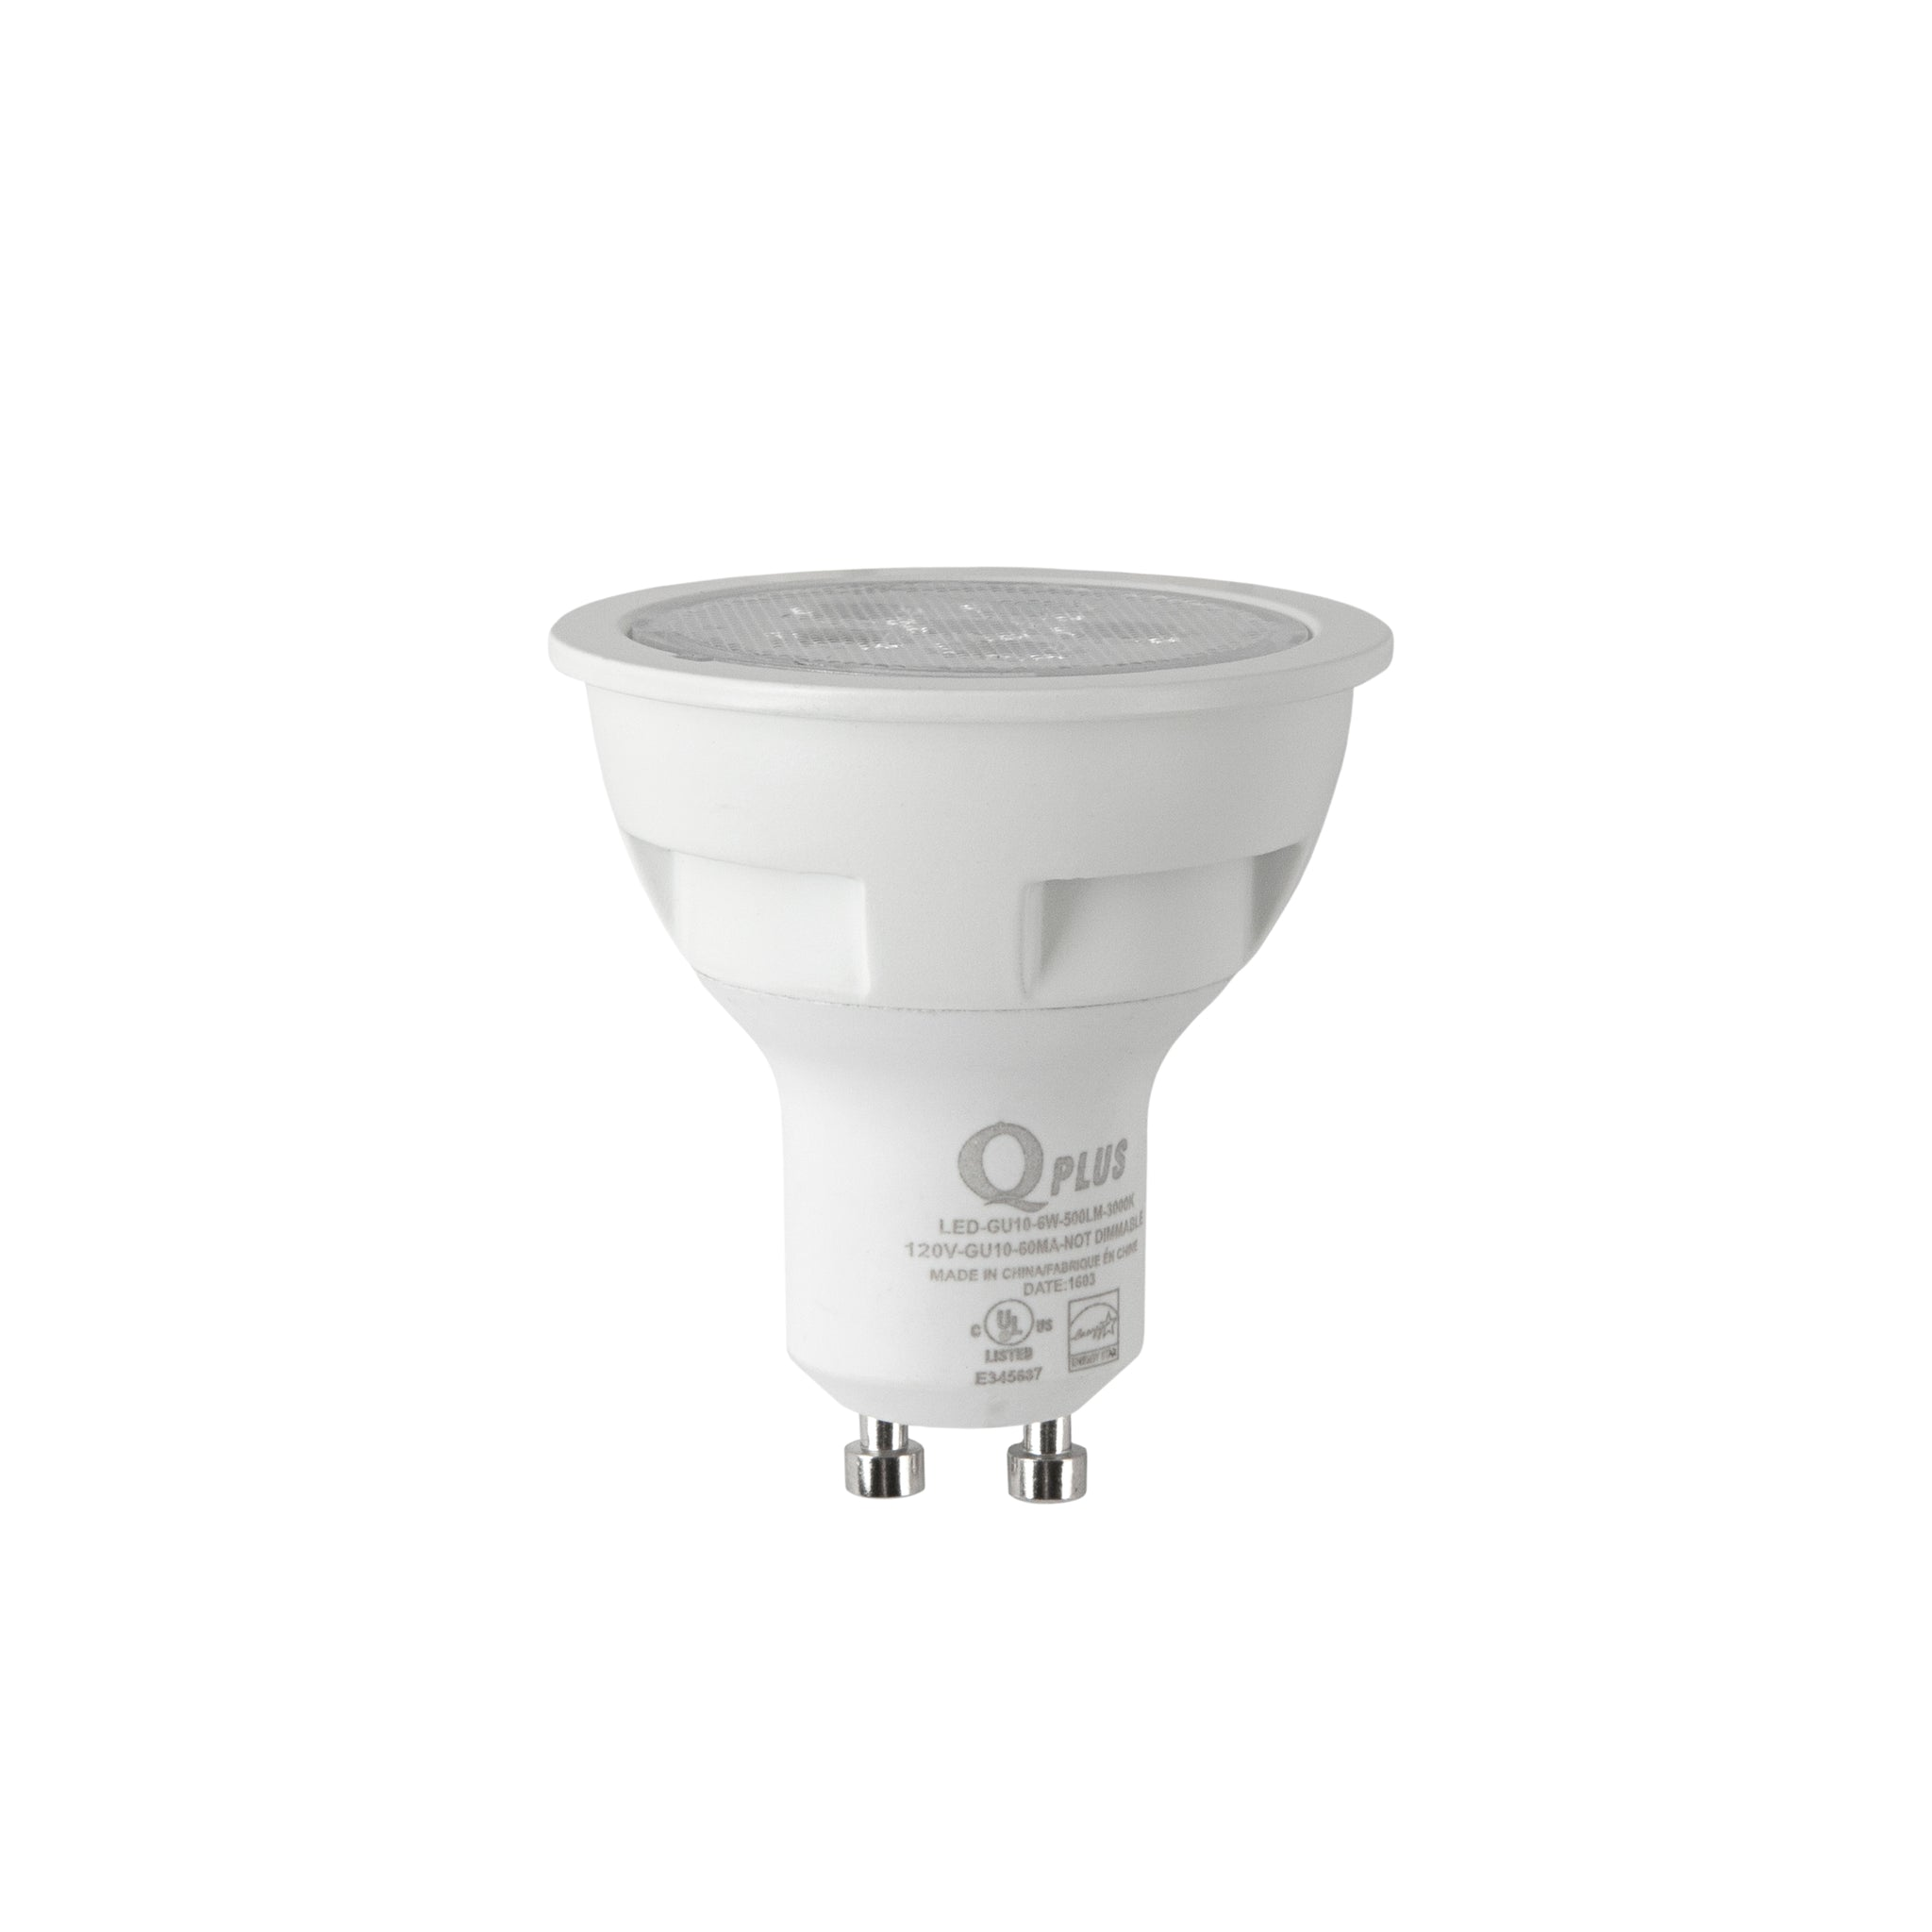 QPlus GU10 LED Bulbs 6W 50W Halogen Bulb Equivalent Warm White 3000K 500lm dimmable 120V